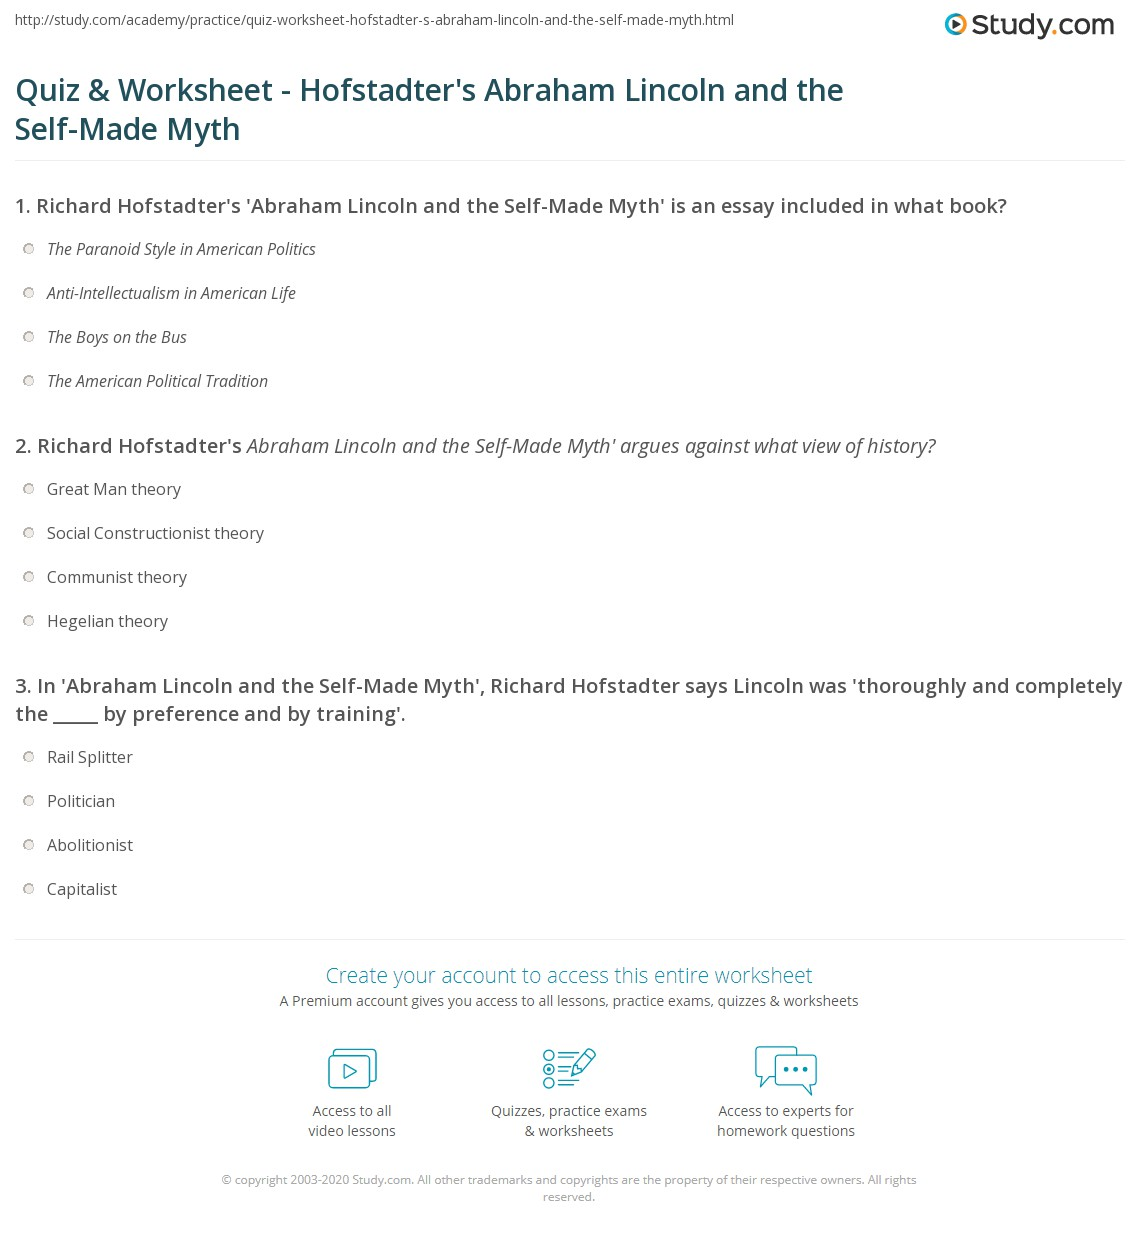 myth essay the myths of ux design product design whatever they  quiz worksheet hofstadter s abraham lincoln and the self made print richard hofstadter s abraham lincoln